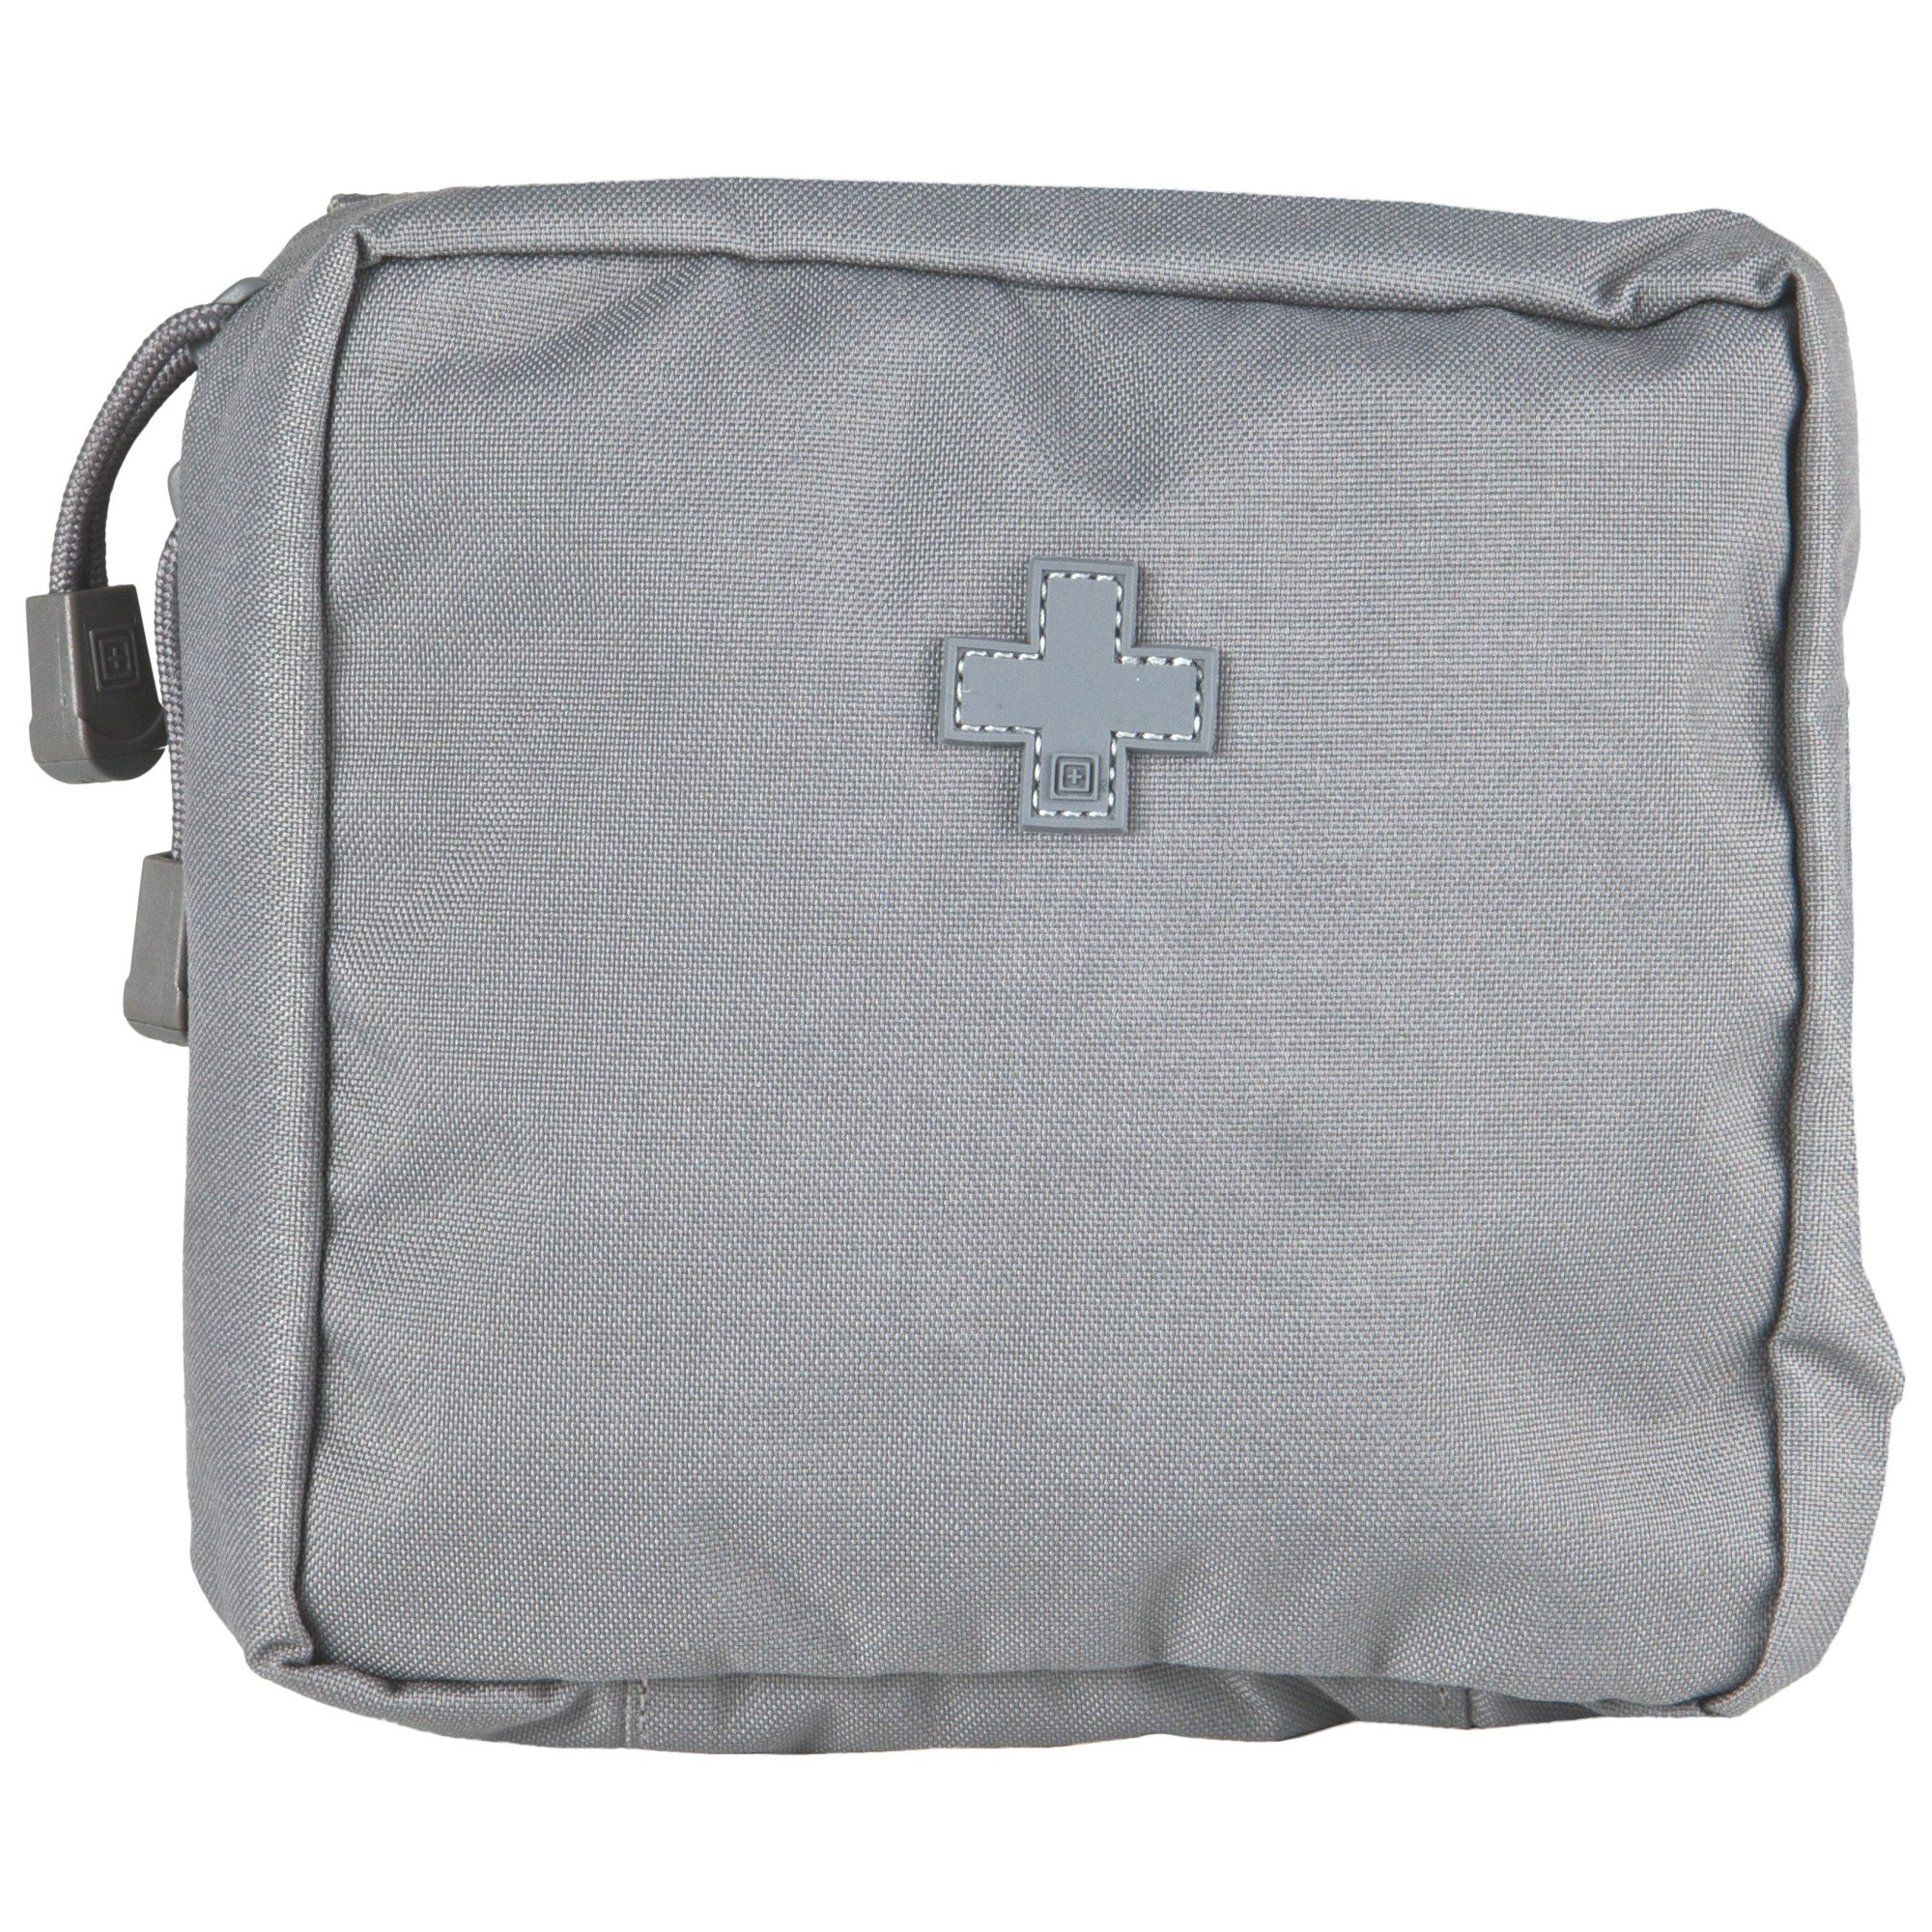 6 X 6 MED POUCH – Storm